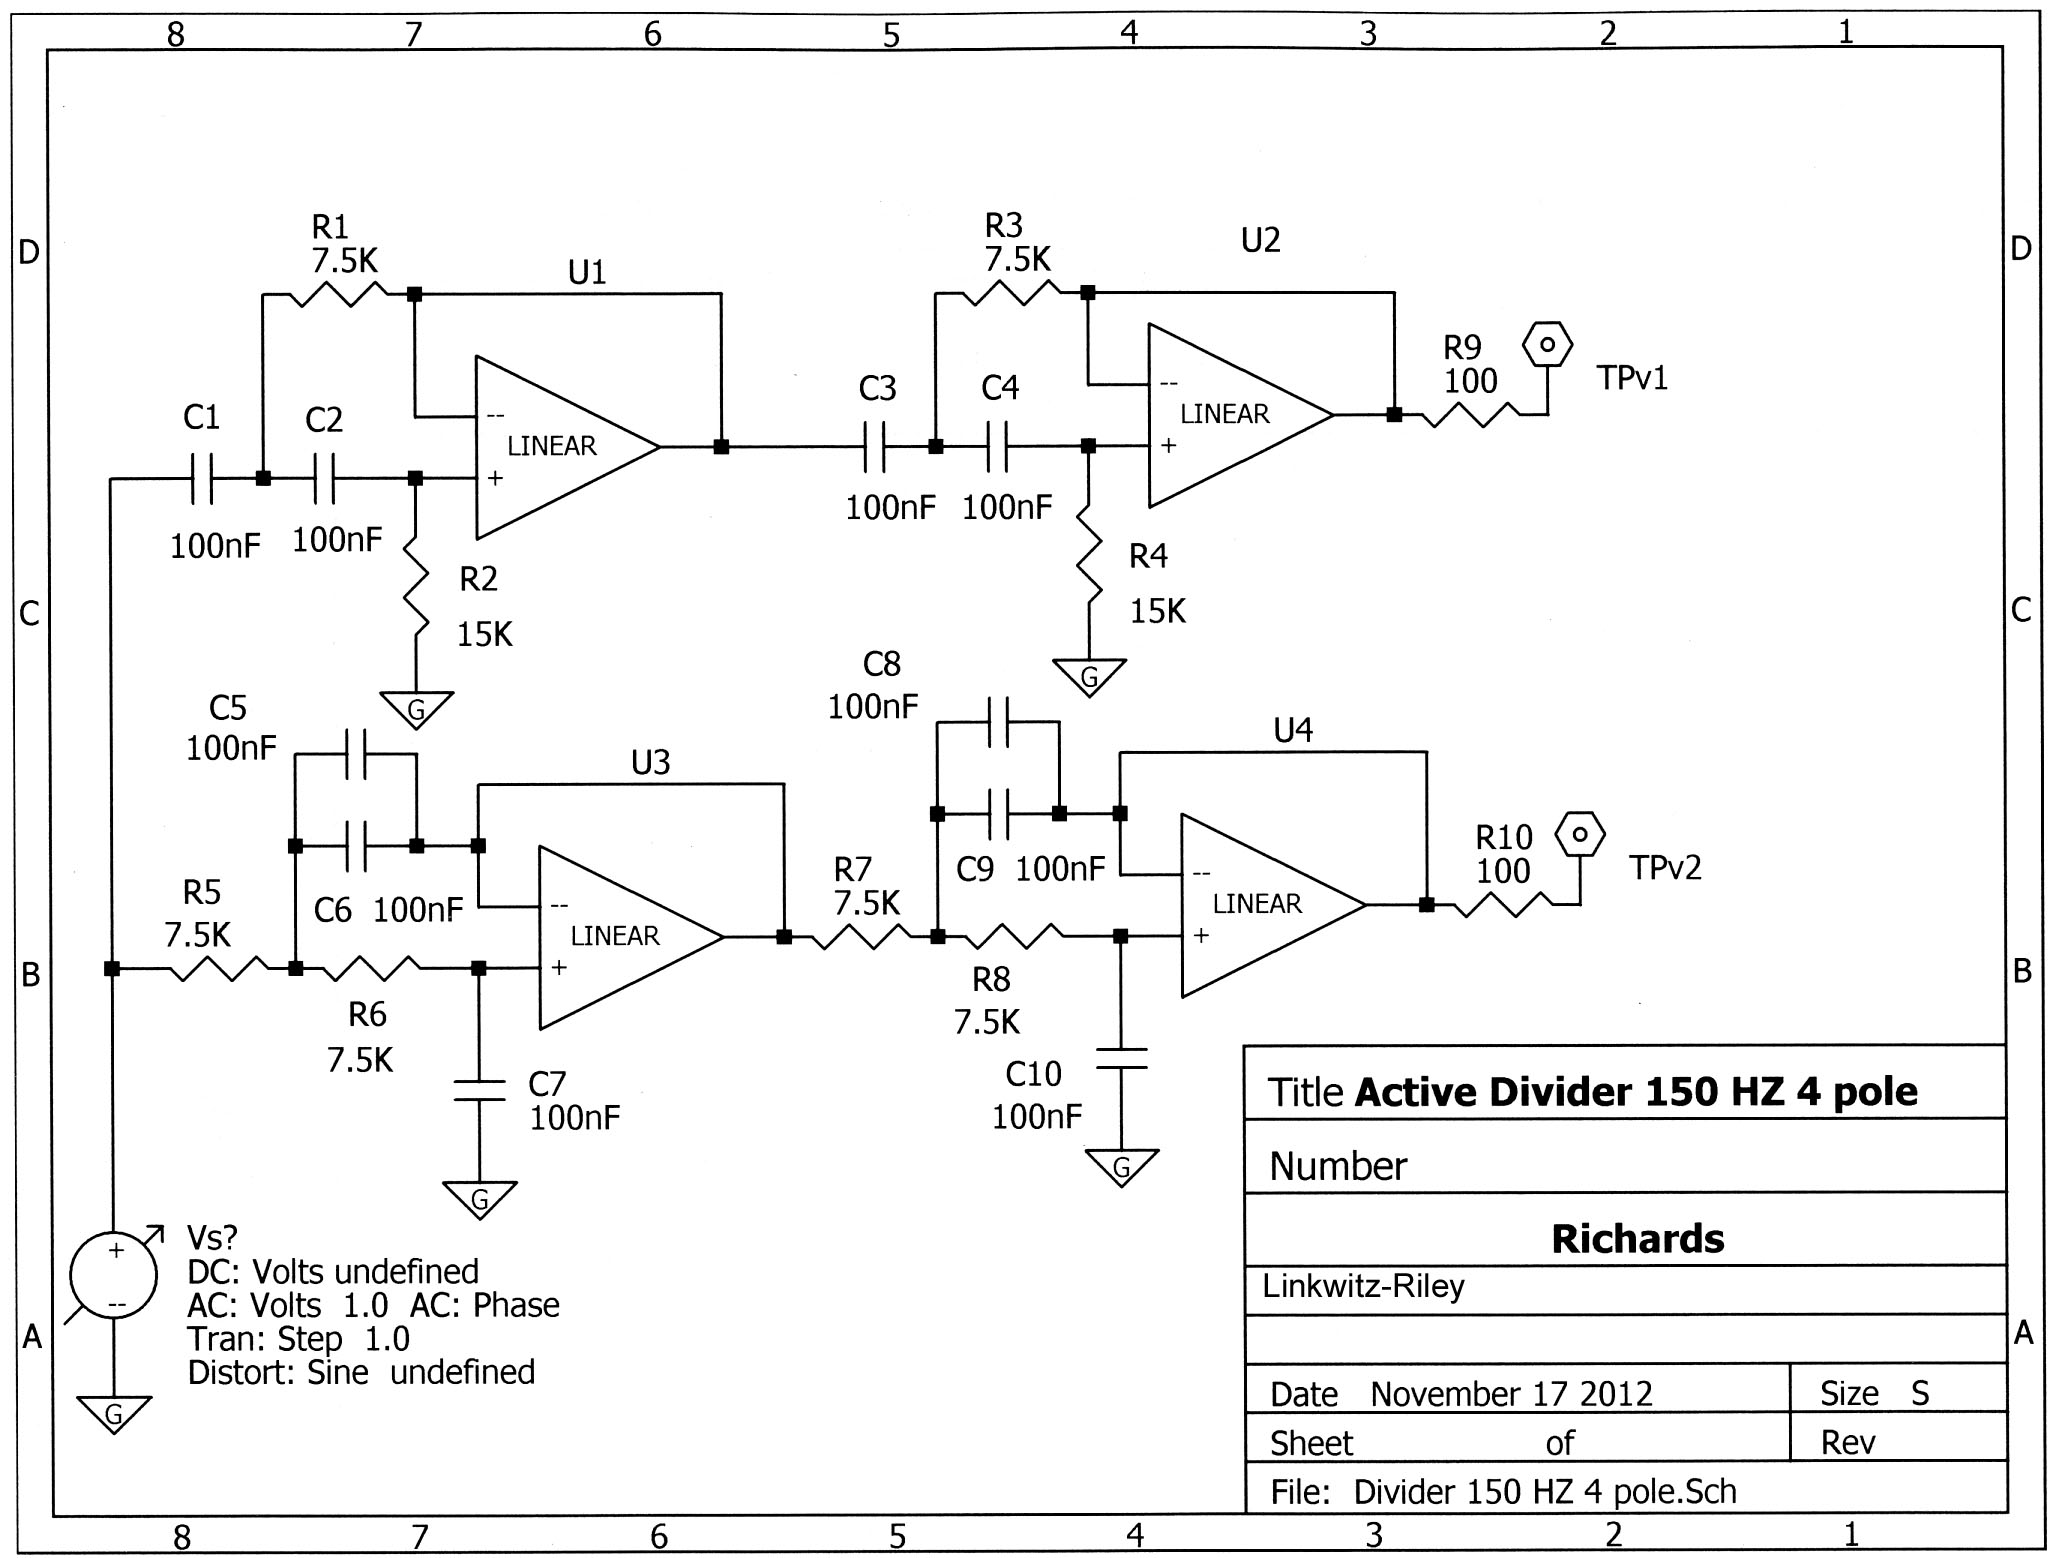 Soundbar Project Active Crossover Schematic Diagram I Never Did Get Very Good At Laplace Transforms The S Plane Where Square Root Of Negative One Lives But Was Taught How To Scale Part Values In An